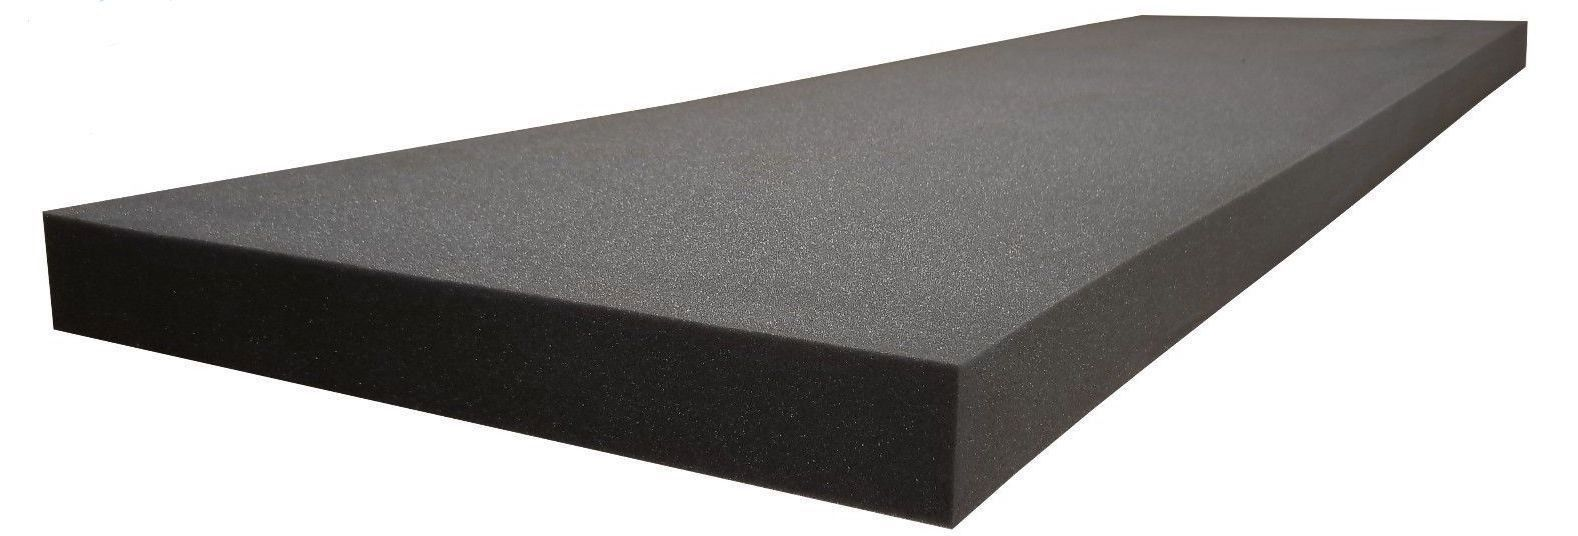 Upholstery Foam Regular Density Charcoal Cushion Replacement